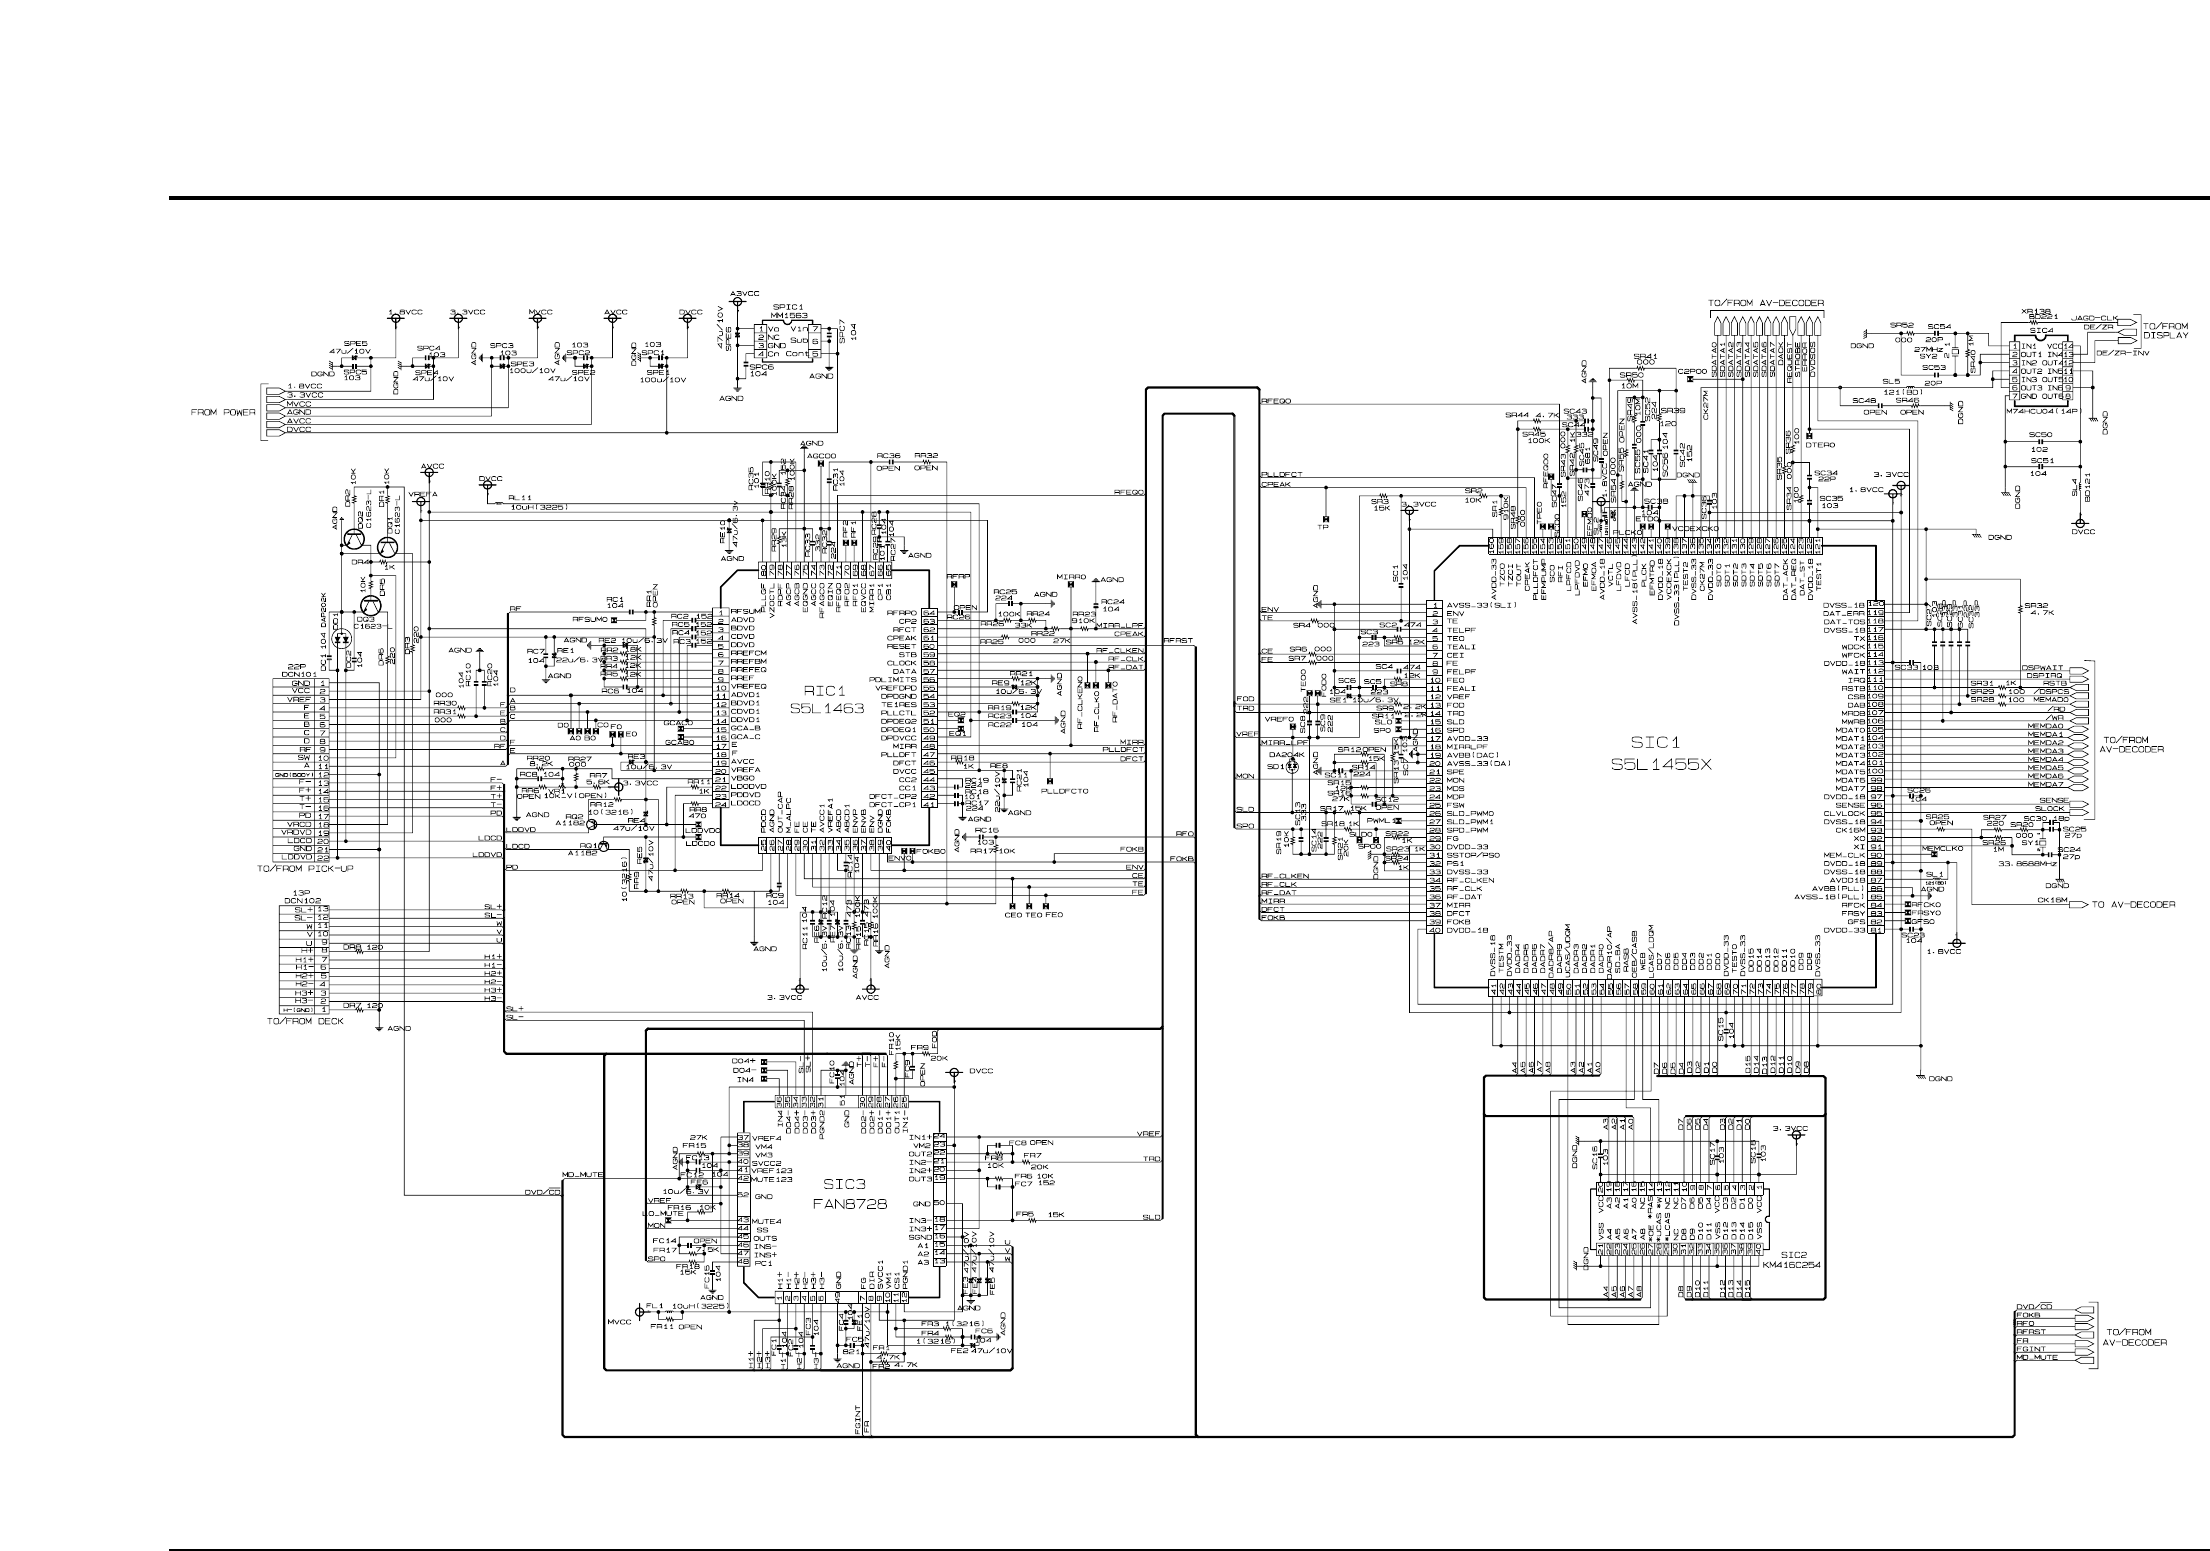 Zl Washer Wiring Diagram Schematic As Well As